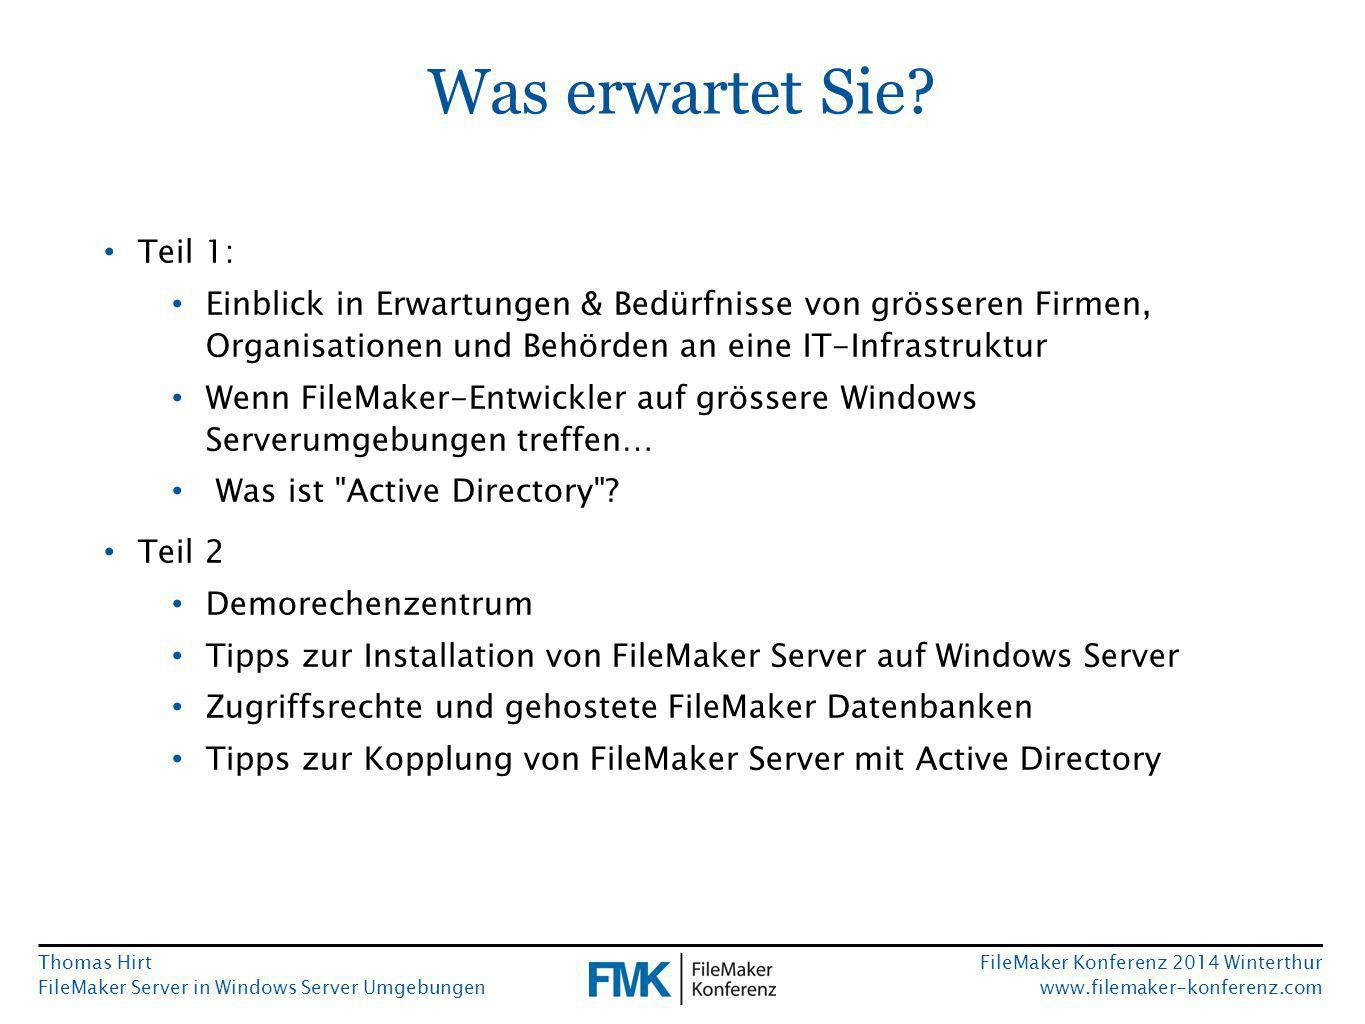 Thomas Hirt FileMaker Server in Windows Server Umgebungen FileMaker Konferenz 2014 Winterthur www.filemaker-konferenz.com Was erwartet Sie.